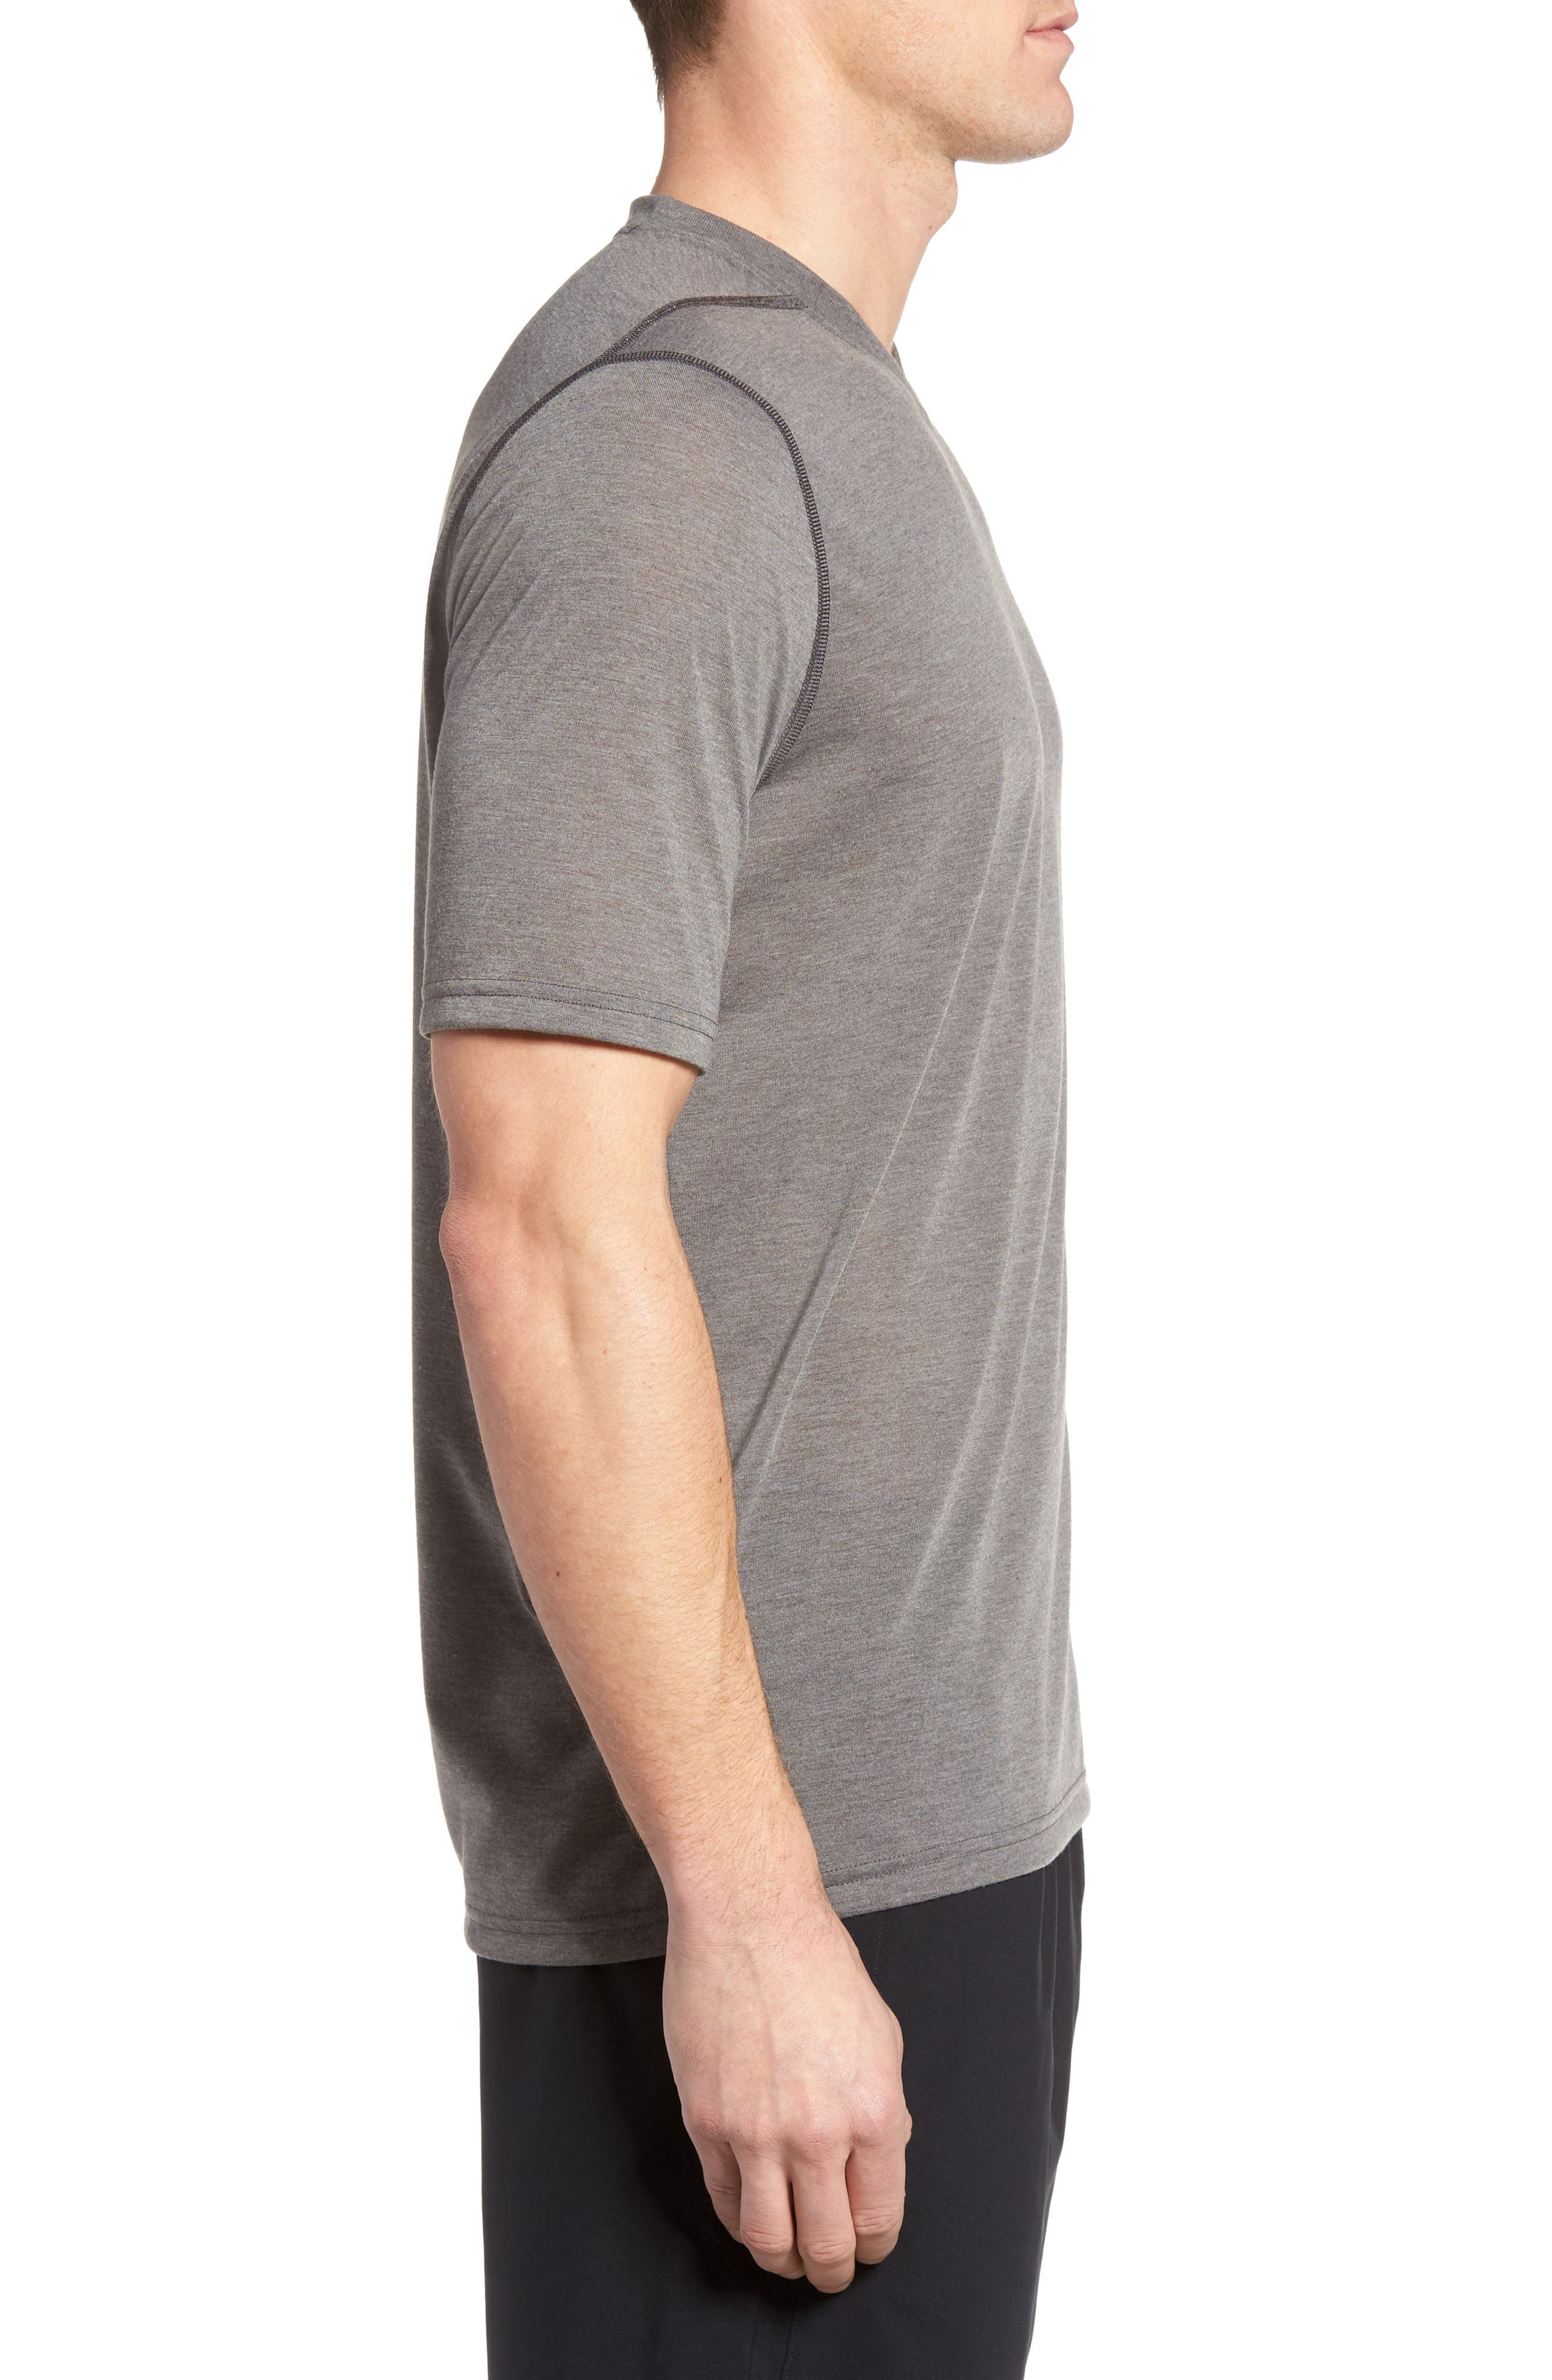 Regular Fit Threadborne T-Shirt,                             Alternate thumbnail 3, color,                             Carbon Heather